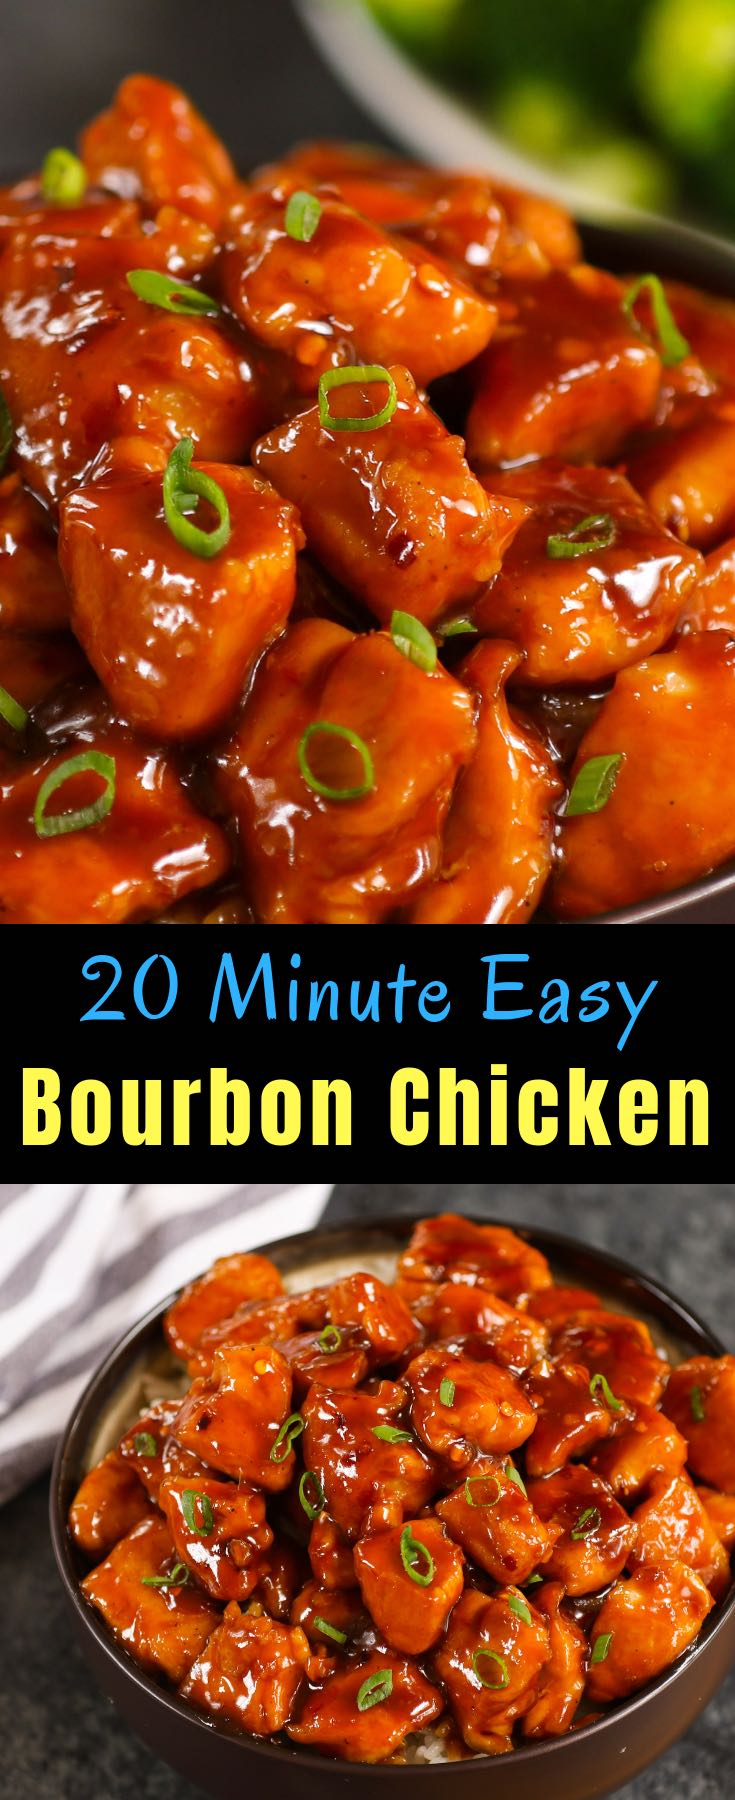 20 Minute Bourbon Chicken - a copycat of the Chinese mall food classic: tender chicken coated in a tangy, sticky sauce with sweet and savory flavors. It's an easy weeknight dinner that's irresistible down to the last bite!